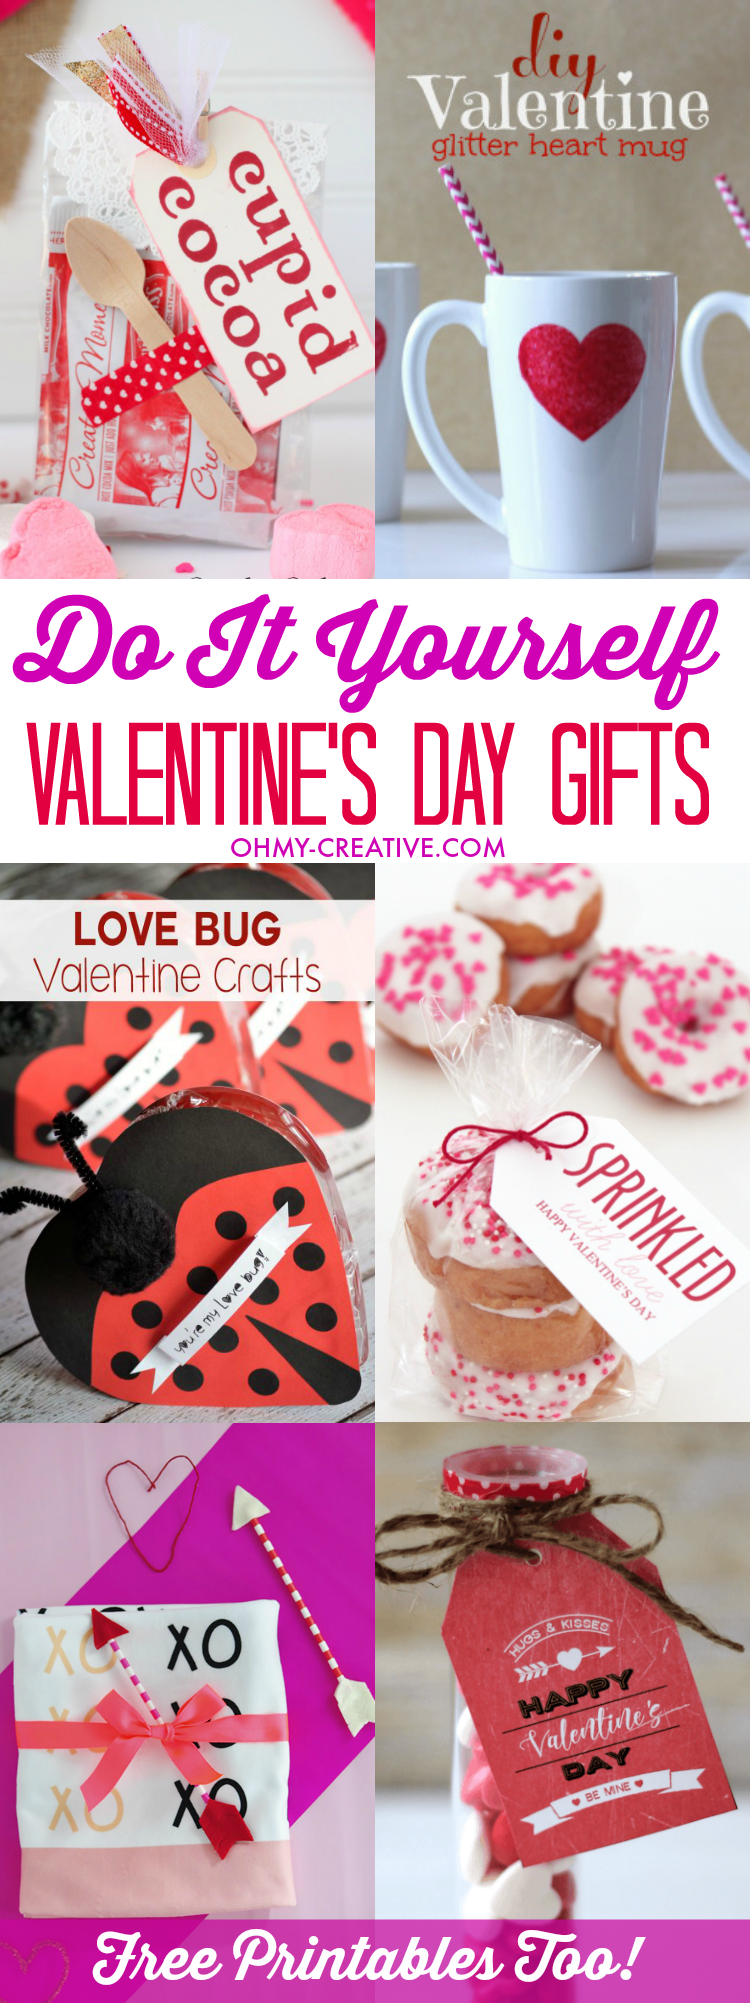 day gift valentines day gifts valentines day gift ideas gift